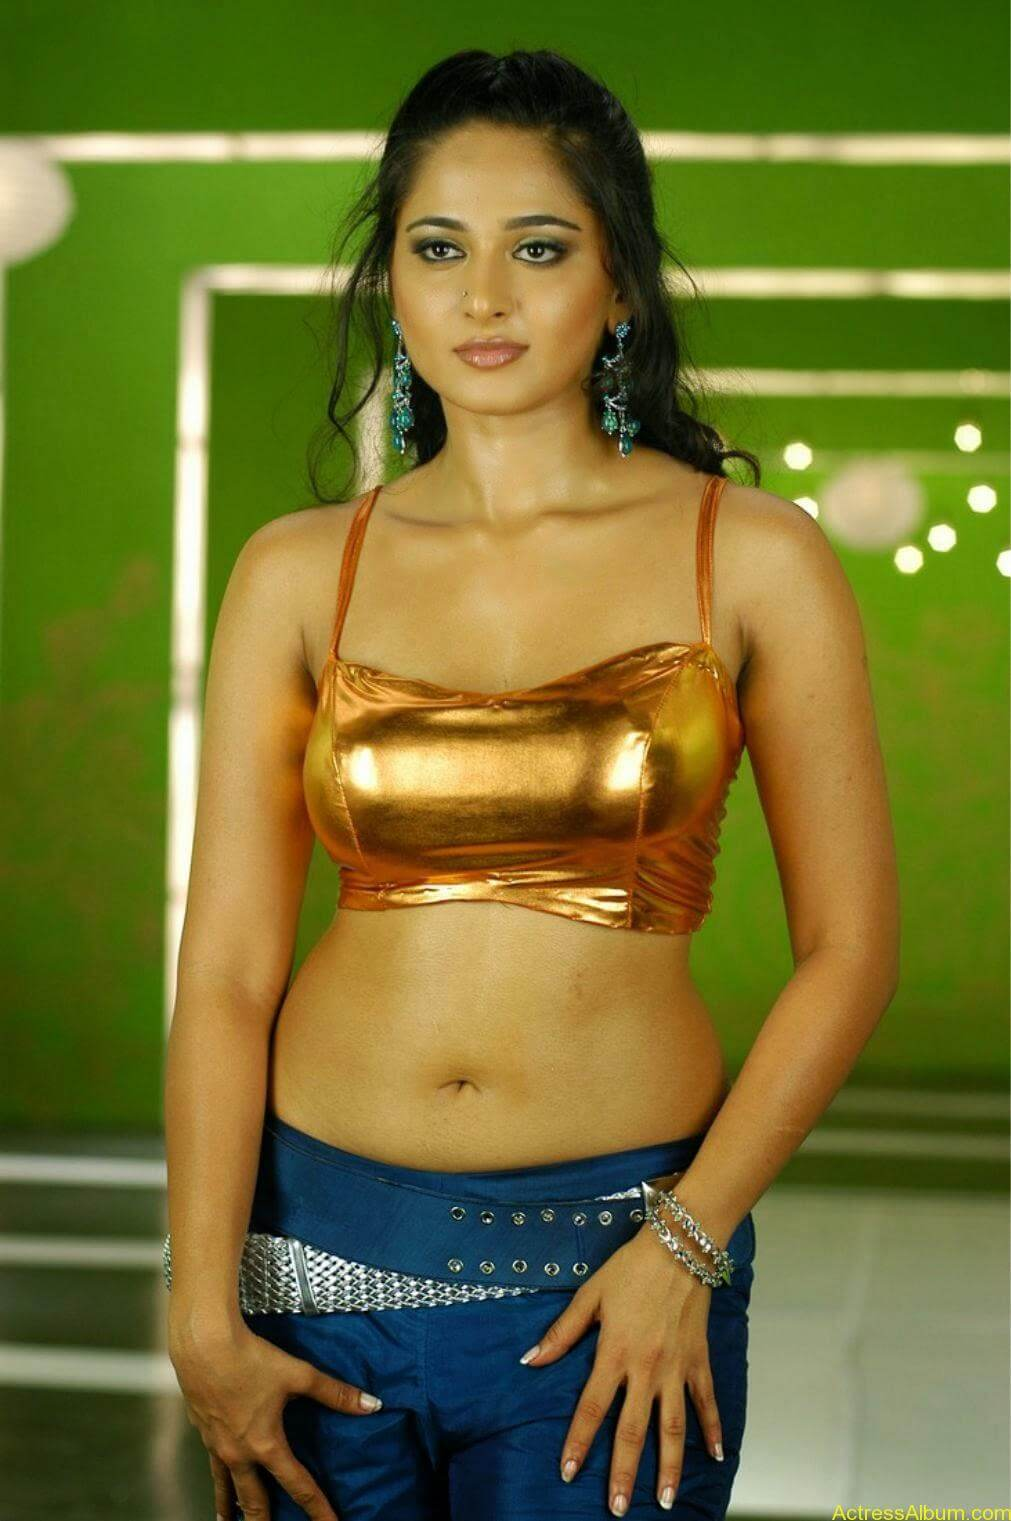 Anushka sharma super hot boob cleavage bikini - 3 part 8